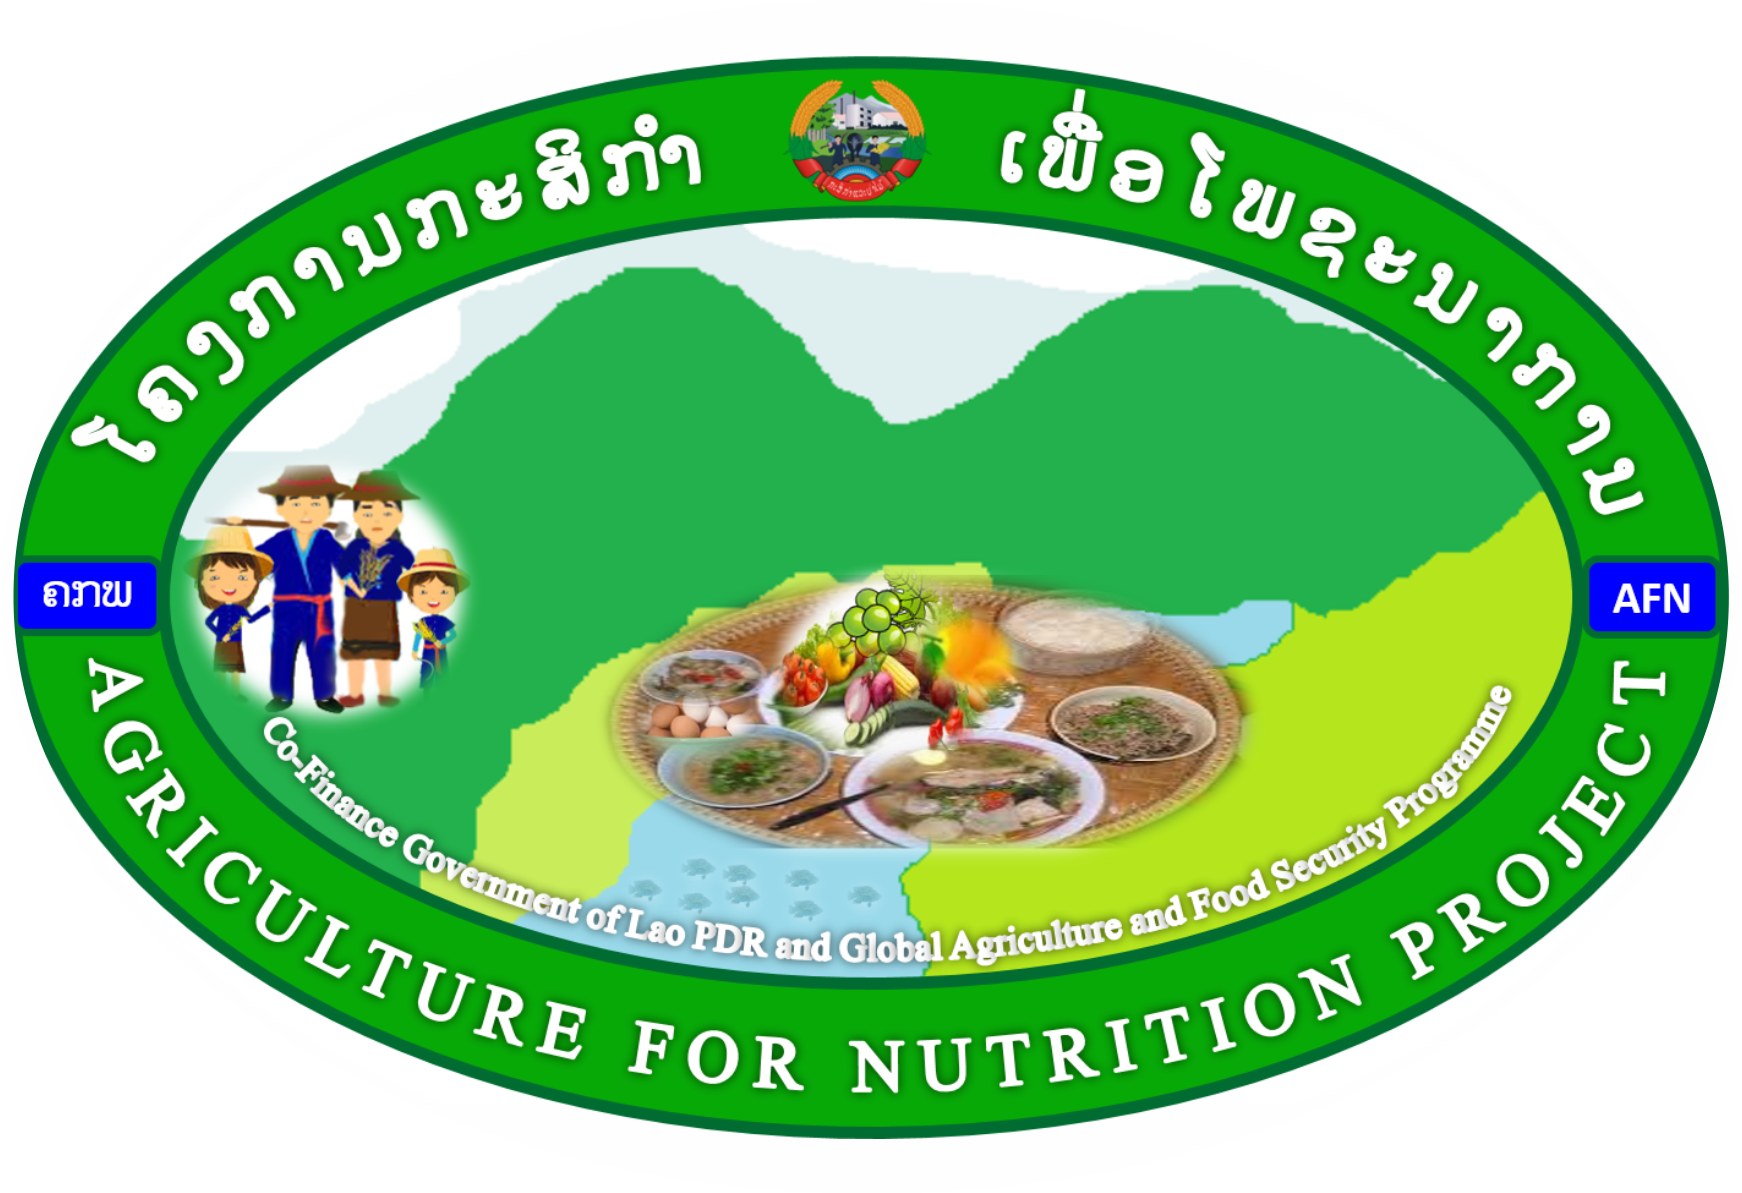 Agriculture For Nutrition project